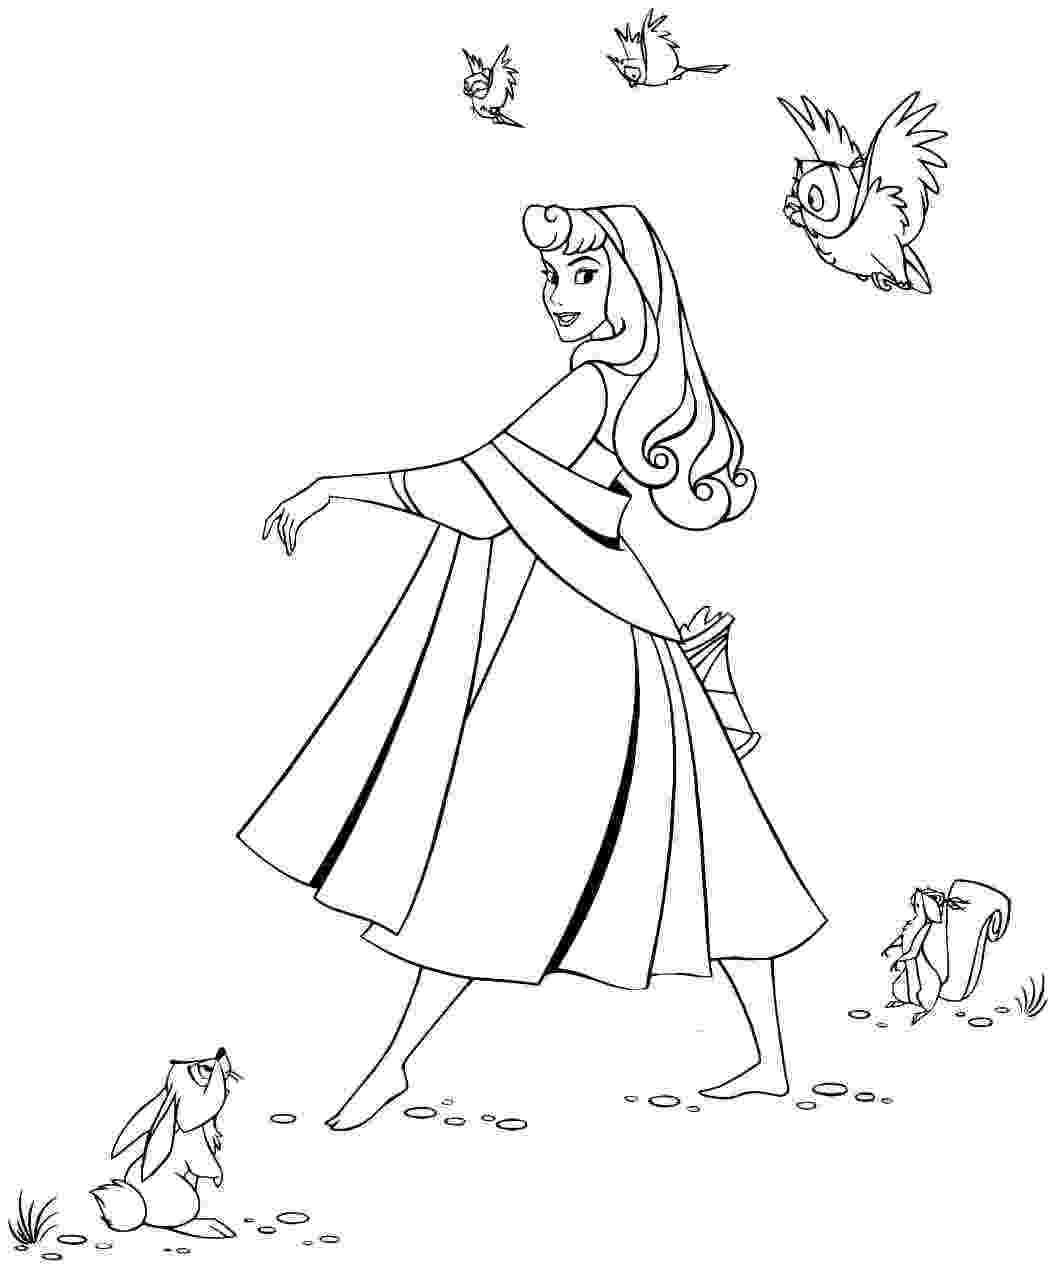 sleeping beauty coloring page free printable sleeping beauty coloring pages for kids coloring sleeping beauty page 1 1